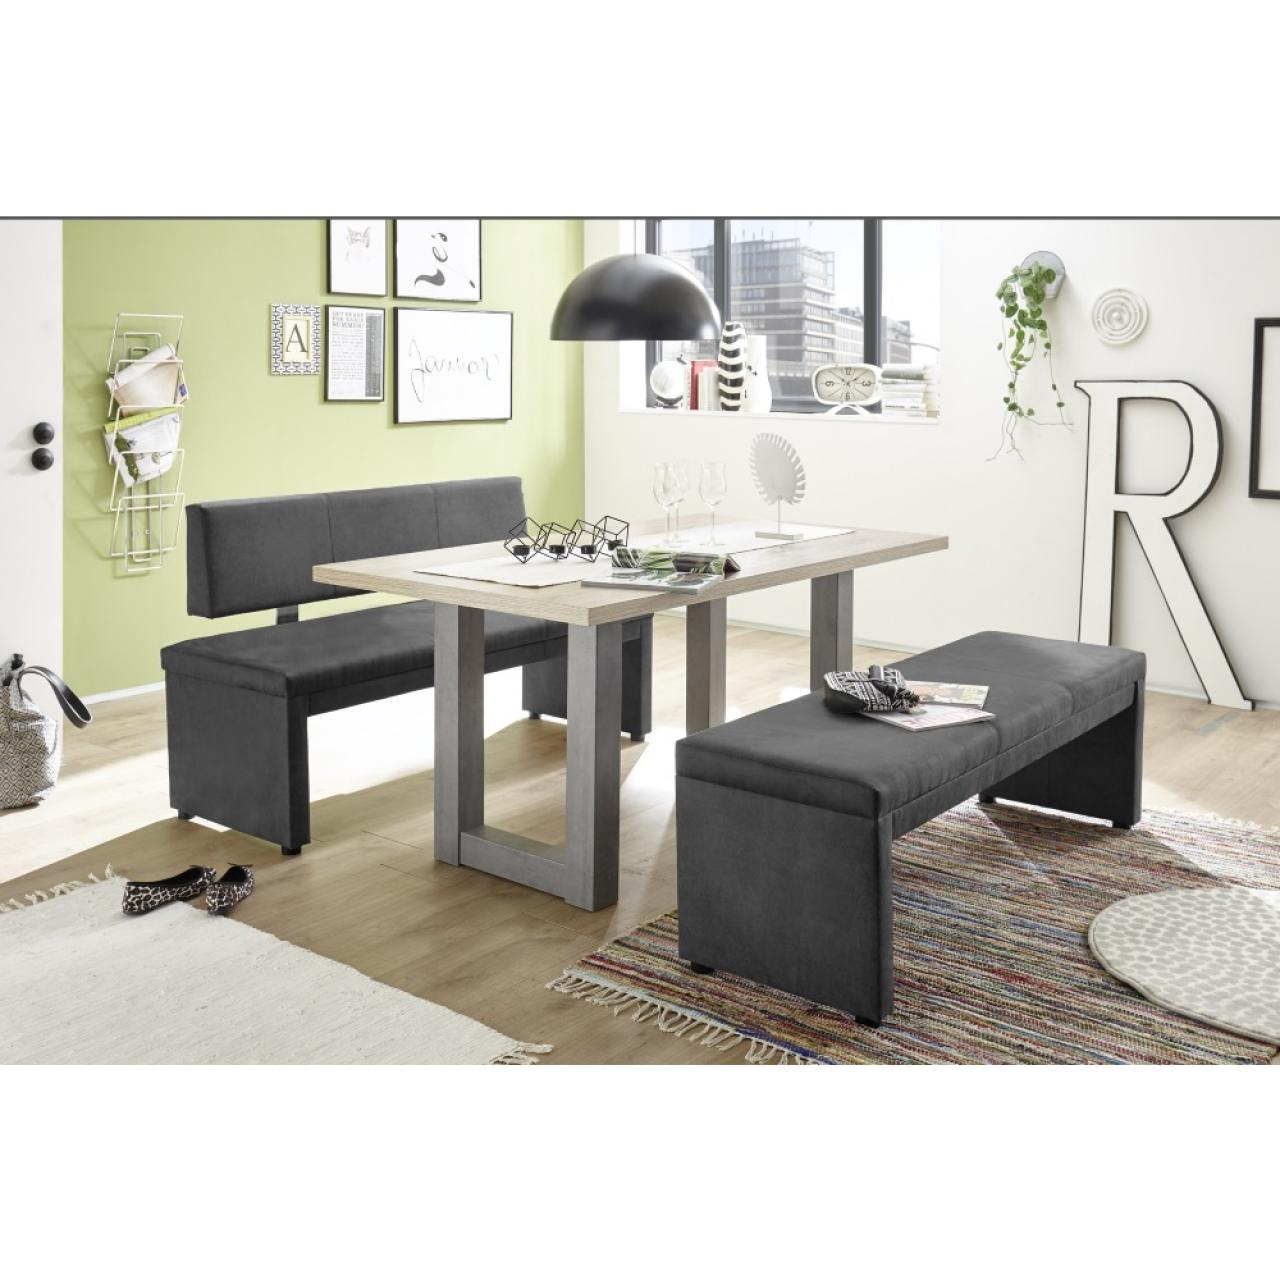 polsterbank malta wohnm bel anthrazit mit r ckenlehne m bel j hnichen center gmbh. Black Bedroom Furniture Sets. Home Design Ideas